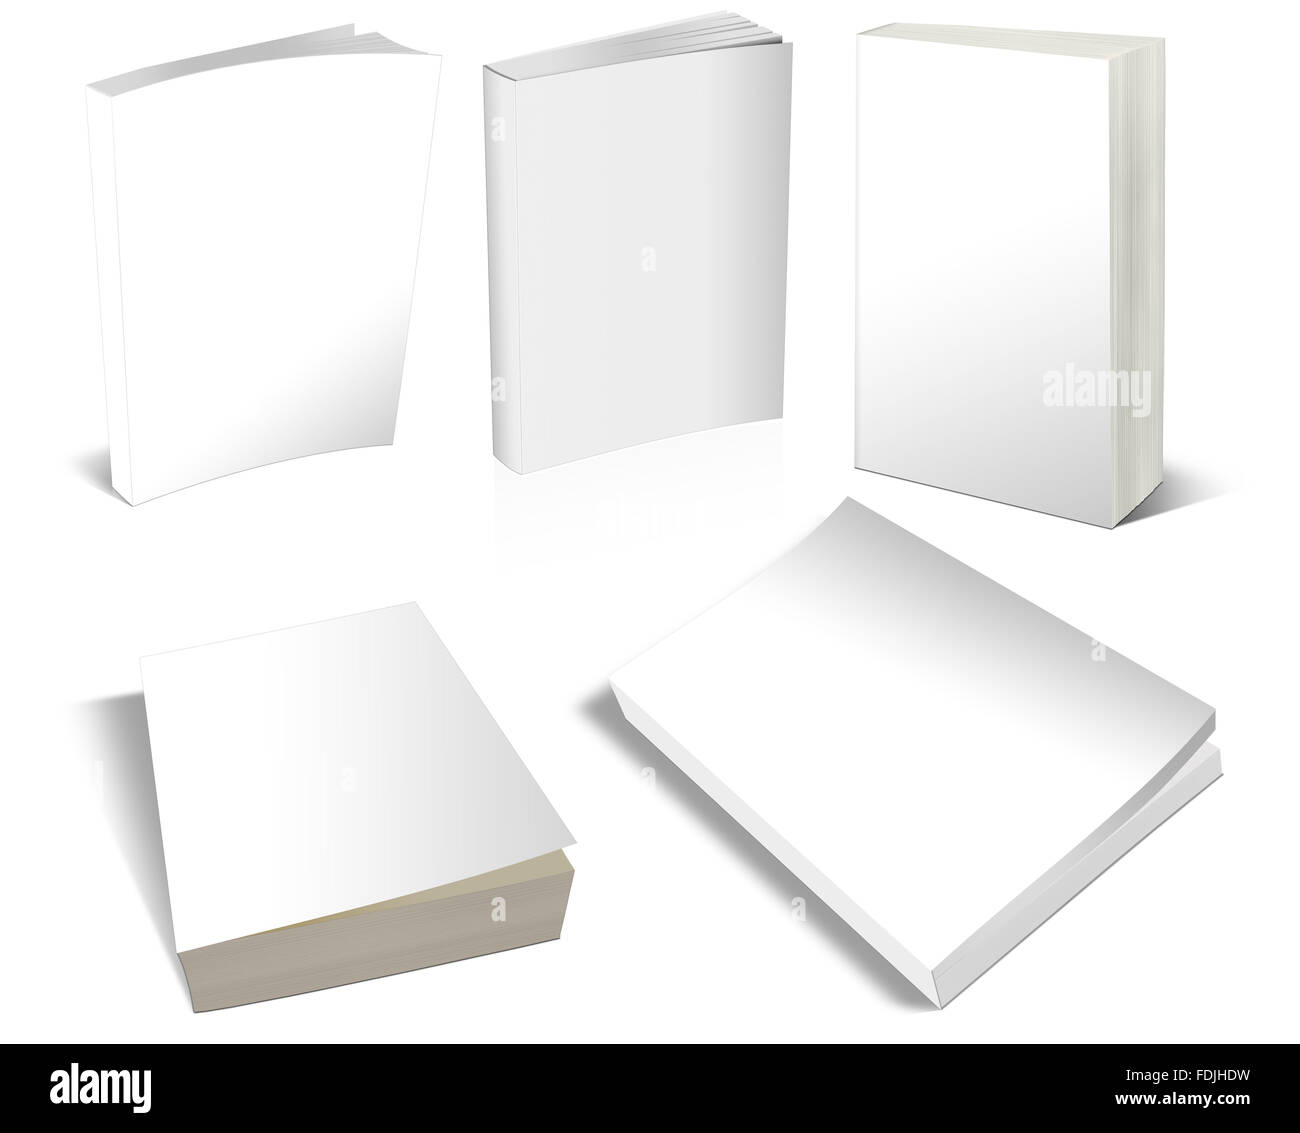 Blank Covers White Books 3-D - Stock Image